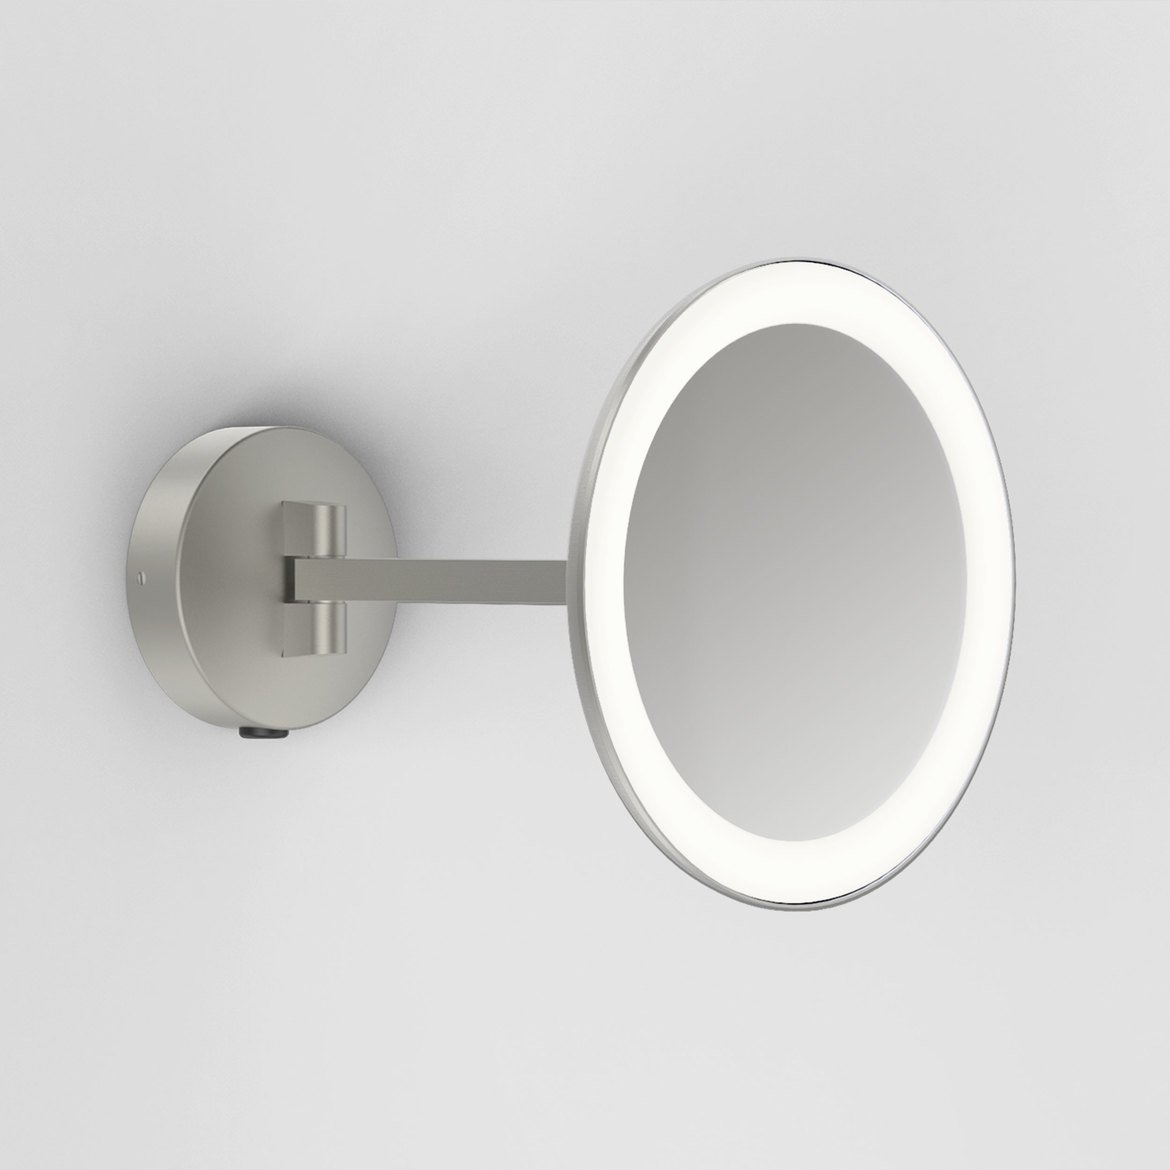 Astro Lighting 1373006 Mascali Round Nickel LED Vanity Mirror